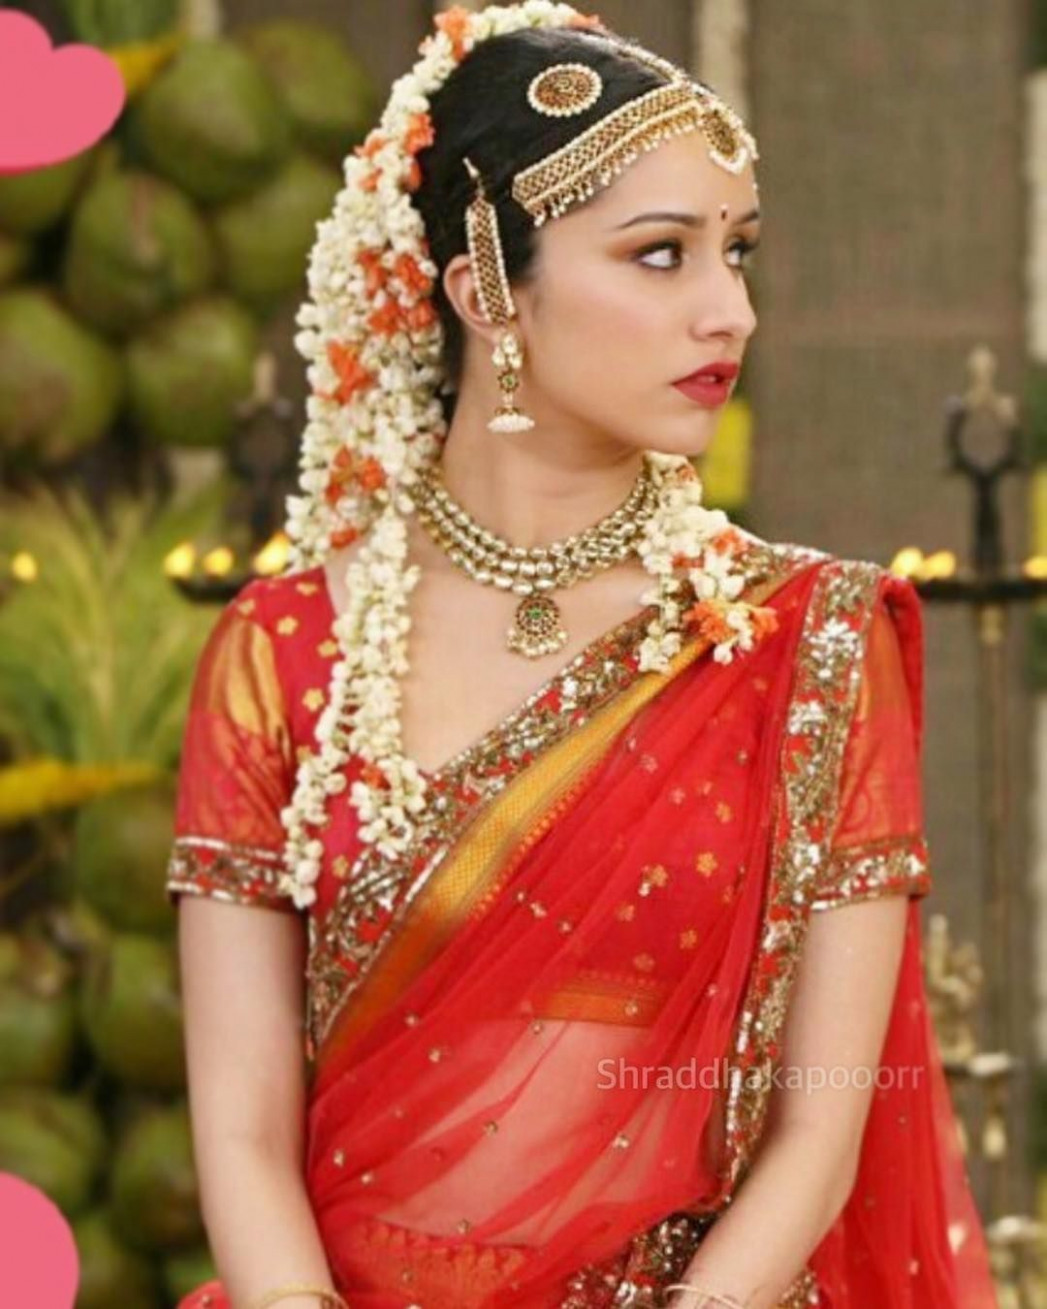 """Shraddha Kapoor Most beautiful bride. 😍"""" (With images"""